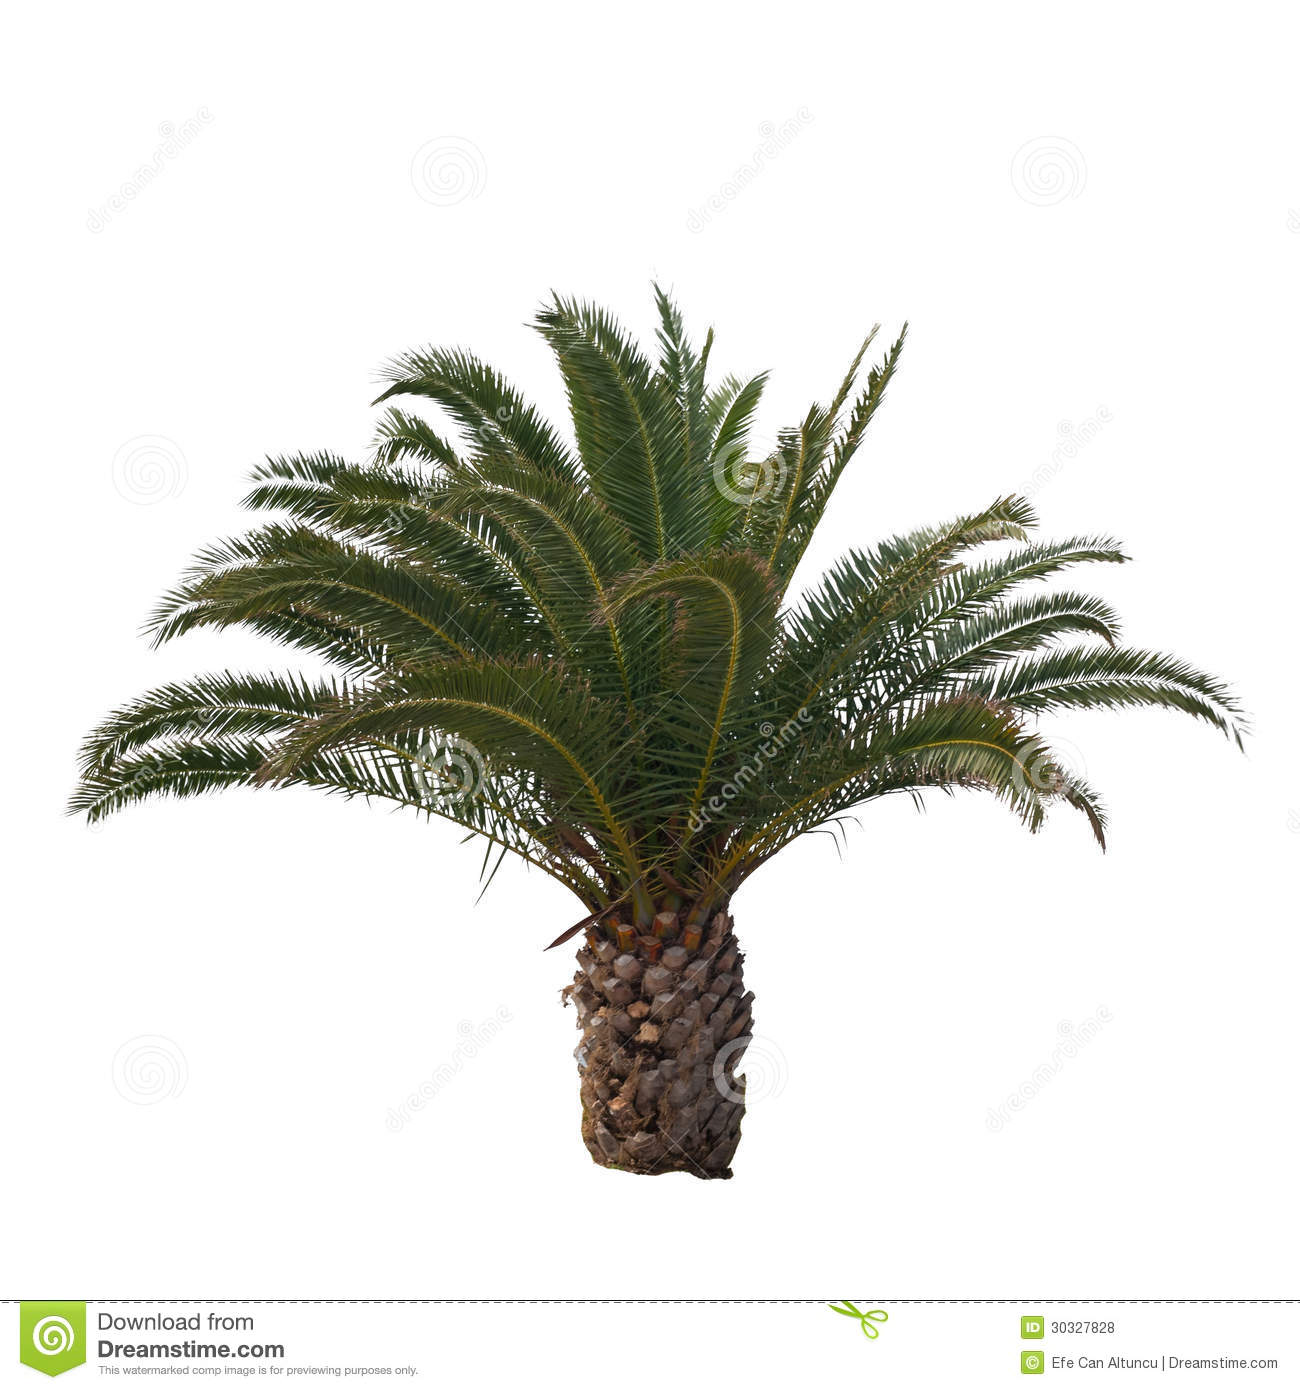 Isolated Palm Tree Royalty Free Stock Photos - Image: 30327828 - photo#22